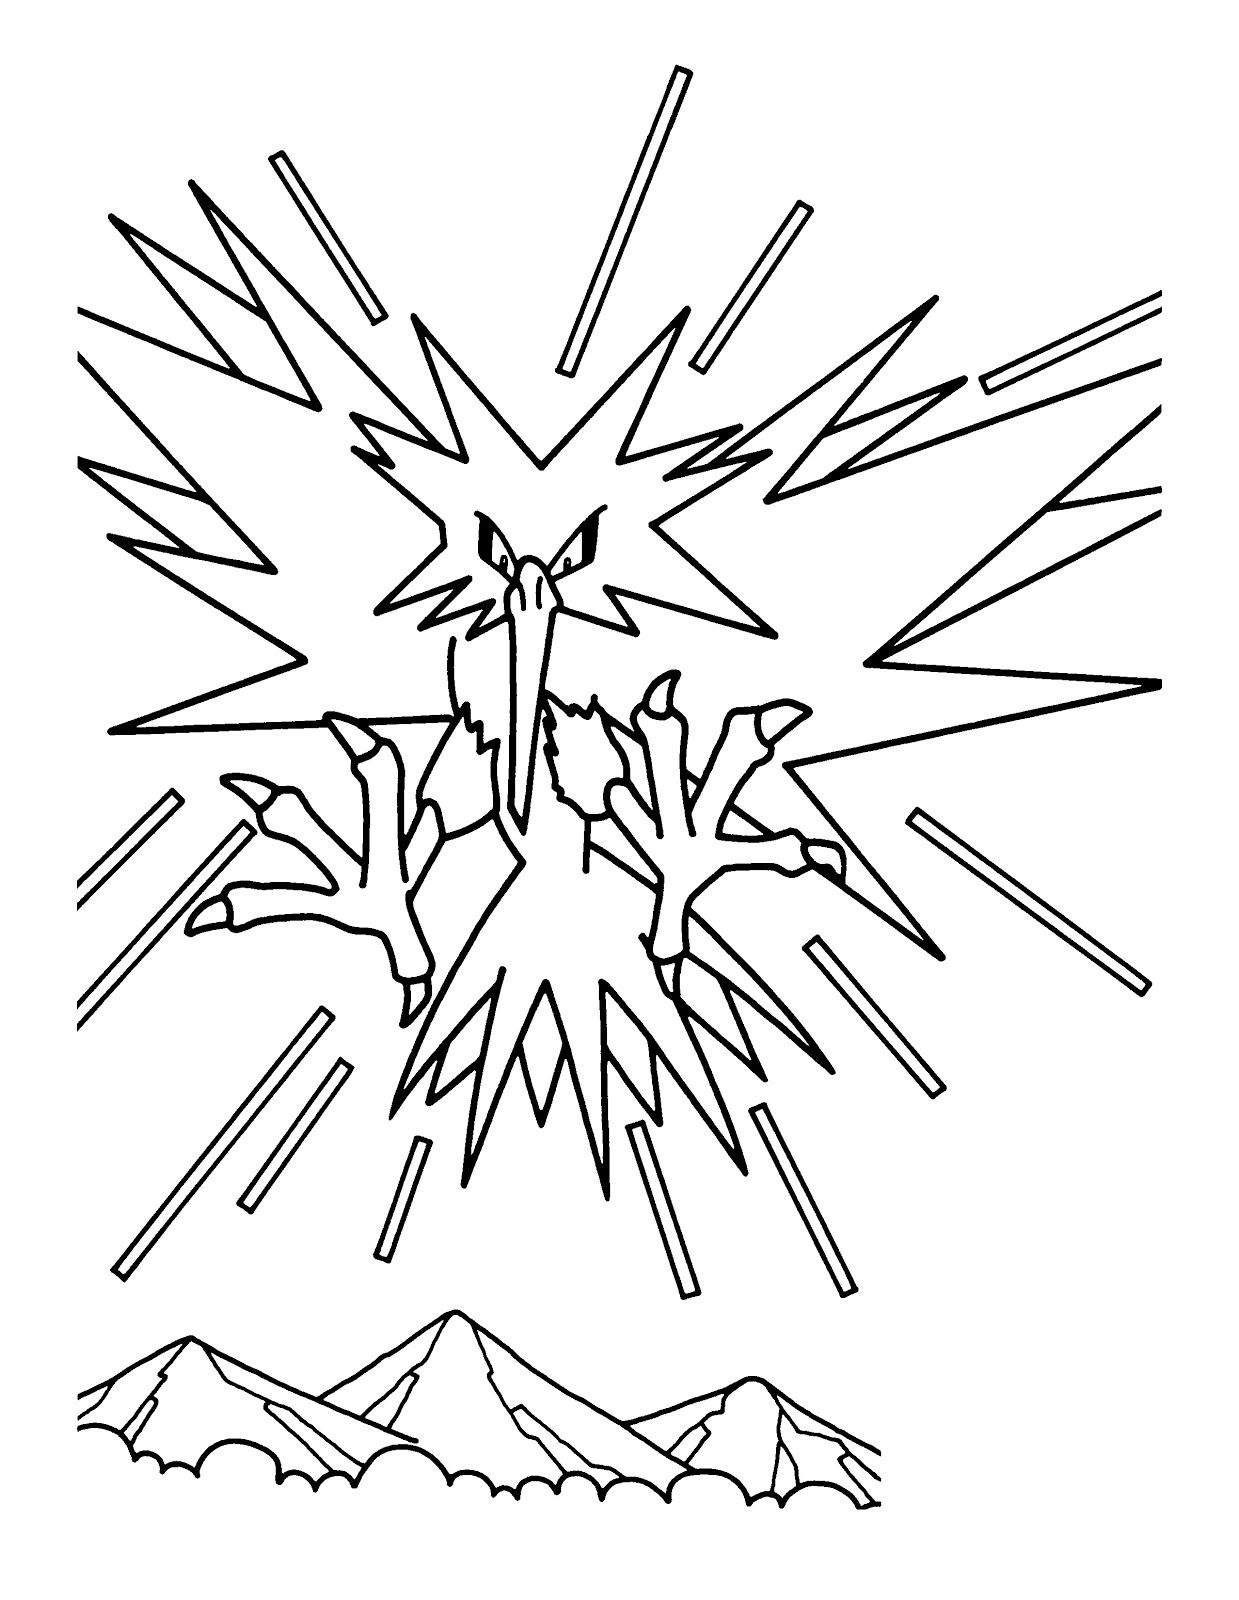 Printable Zapdos Pokemon Coloring Pages Pokemon Coloring Pages Pokemon Coloring Zapdos Pokemon